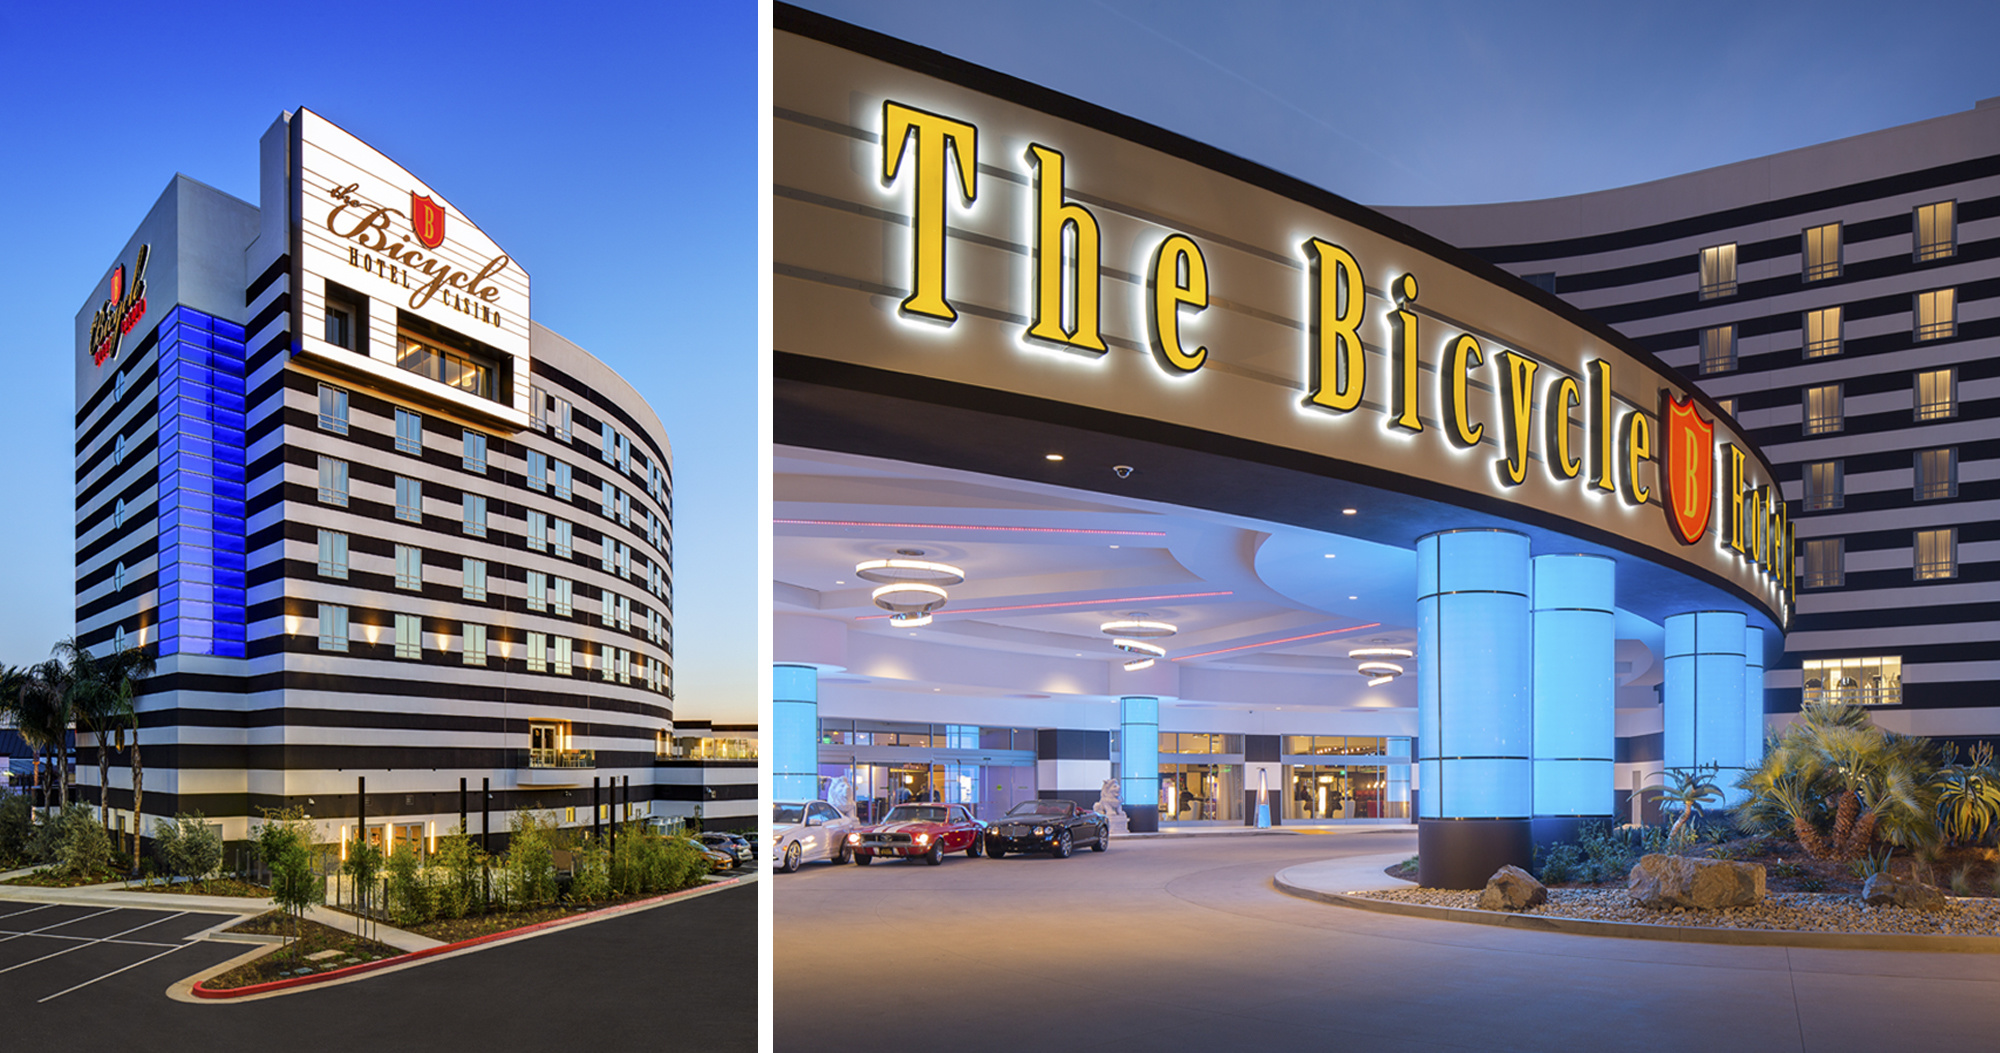 lee sakahara architects the bicycle casino hotel bell gardens ca united states